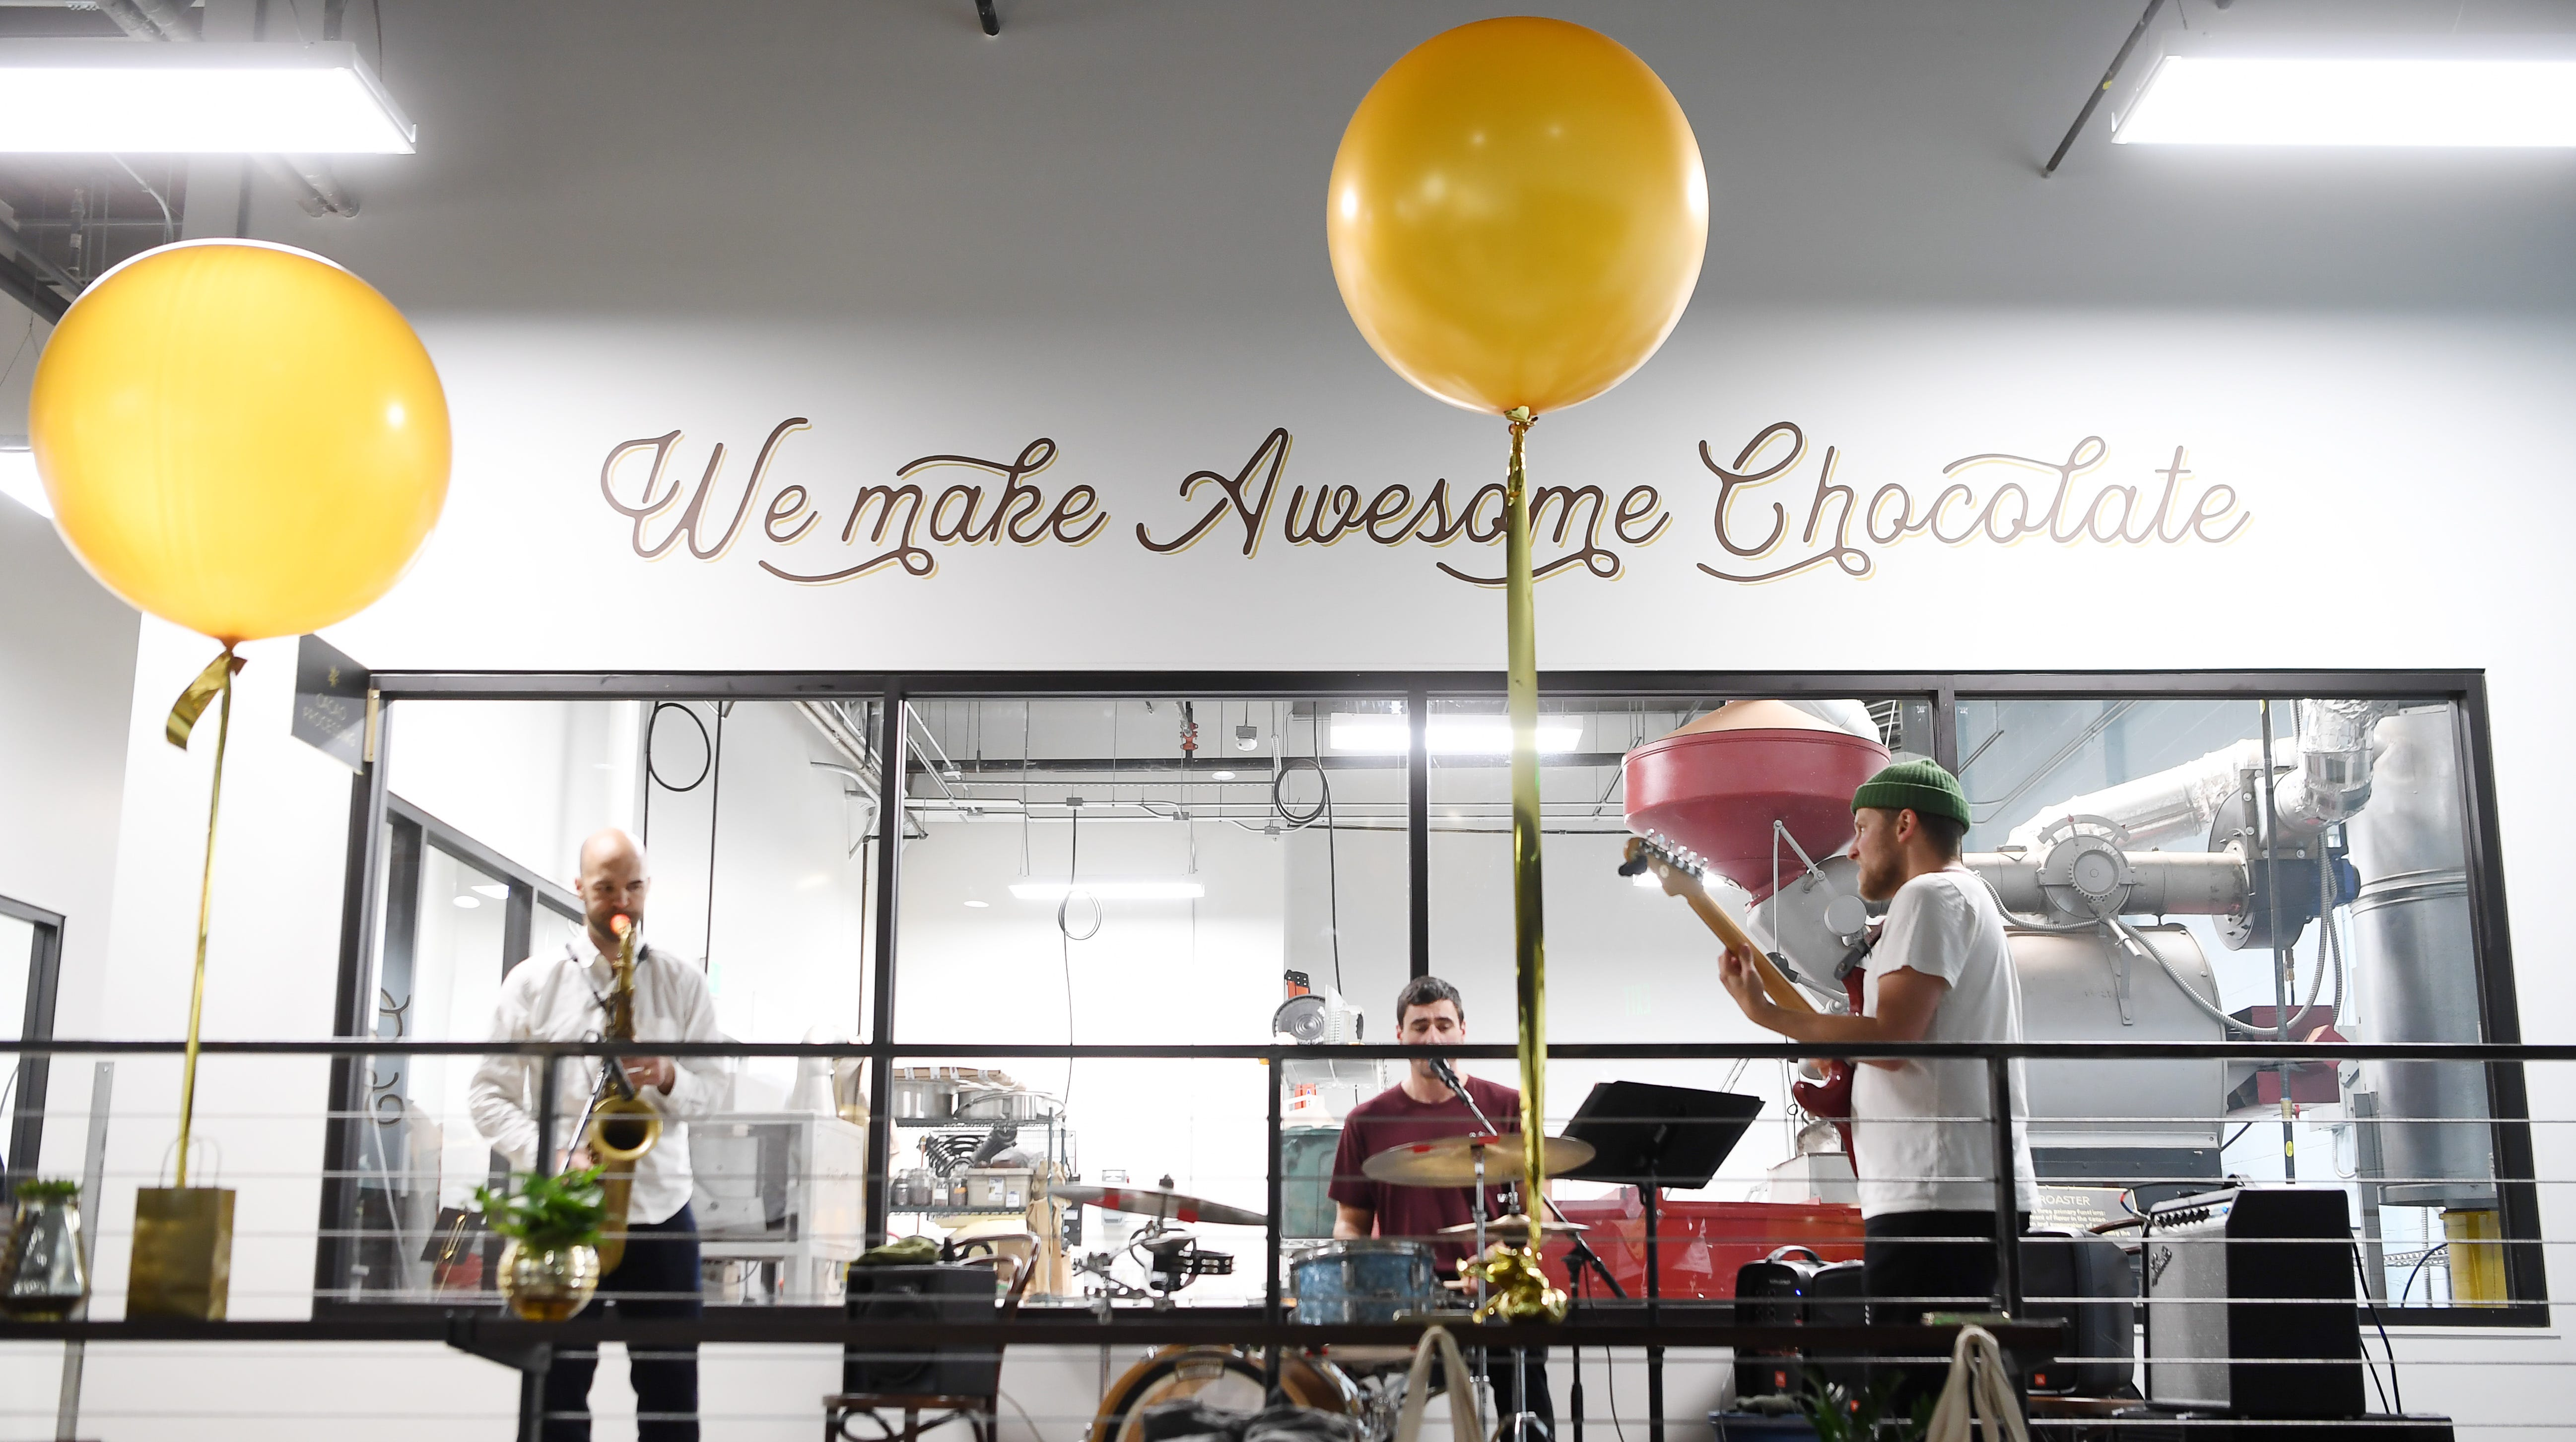 Gallery: French Broad Chocolate Factory moves to new RAMP digs